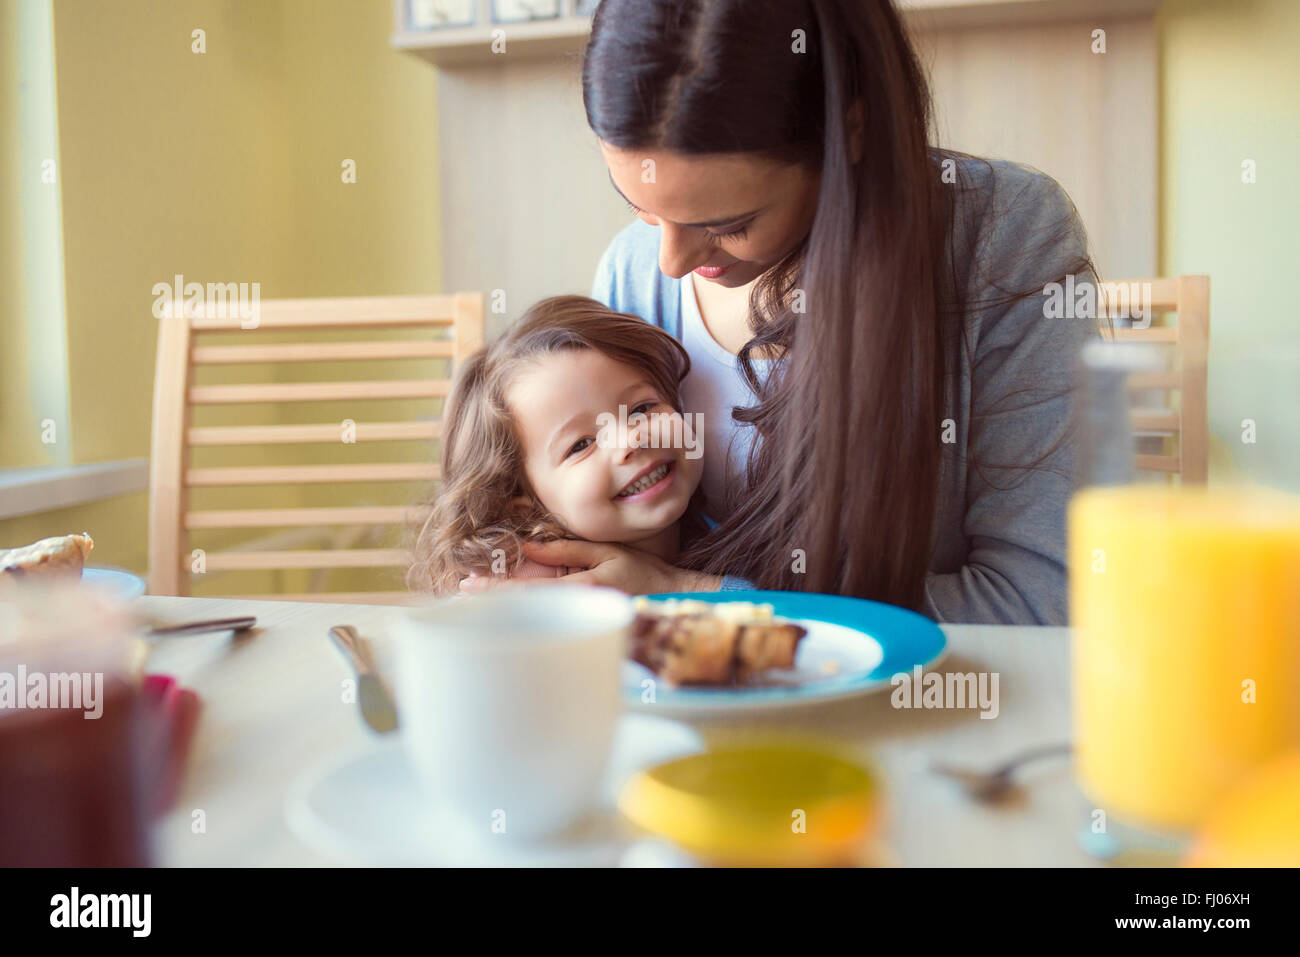 Portrait of smiling little girl and her mother at breakfast table - Stock Image